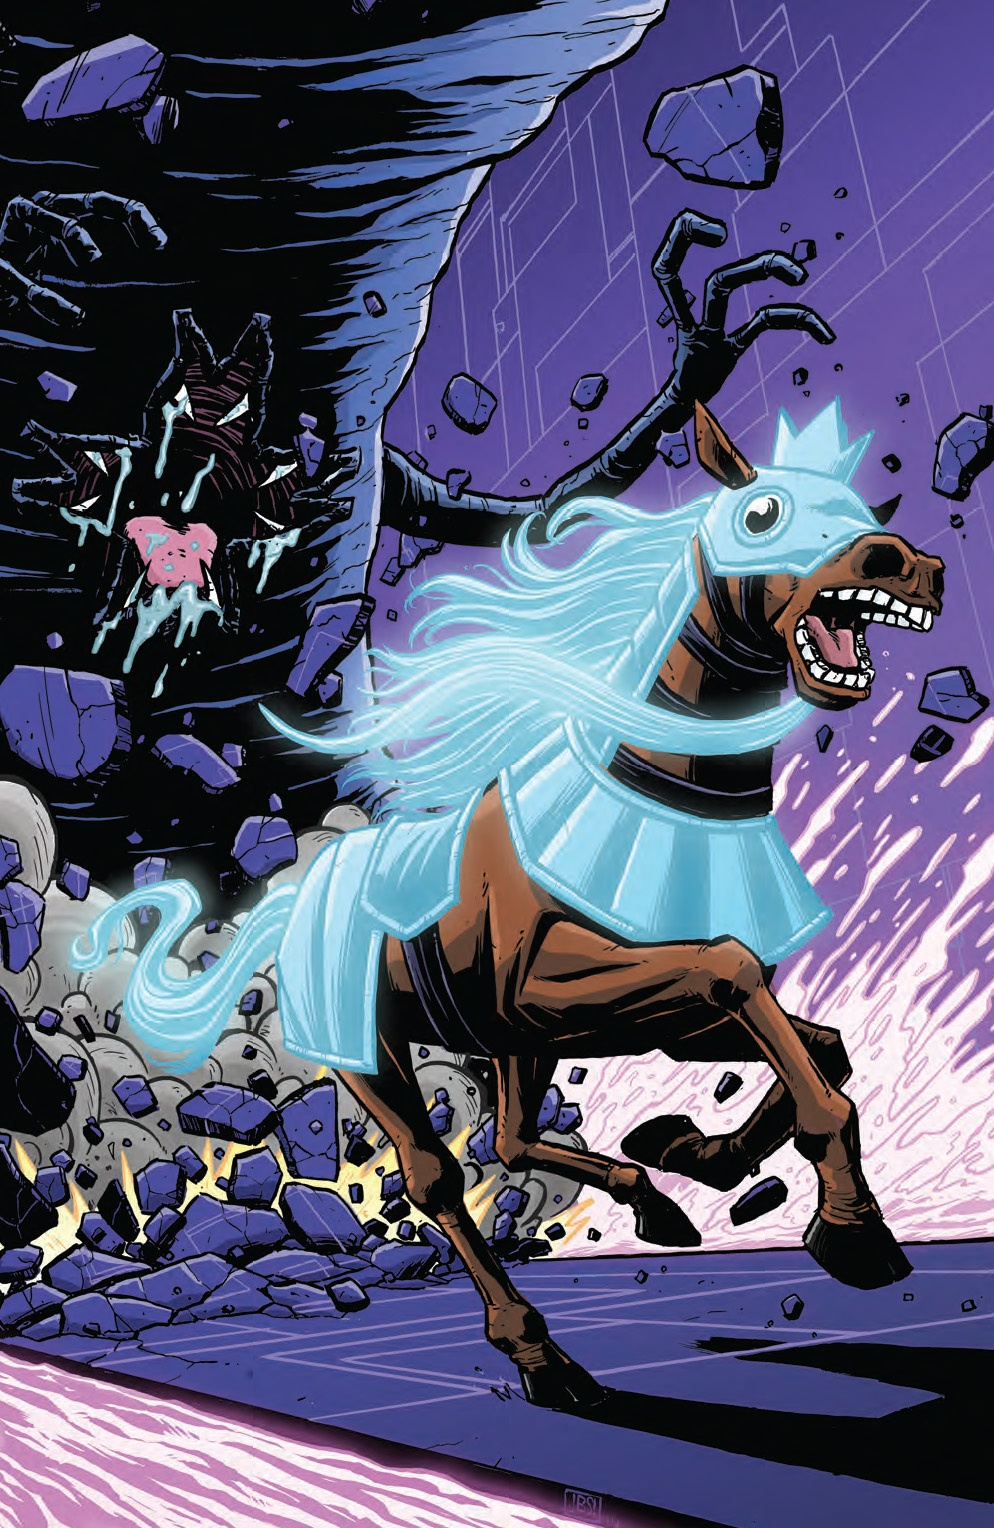 Bravest warriors big boobs nude Preview Bravest Warriors 2014 Giant Paralyzed Horse Comic The Mary Sue